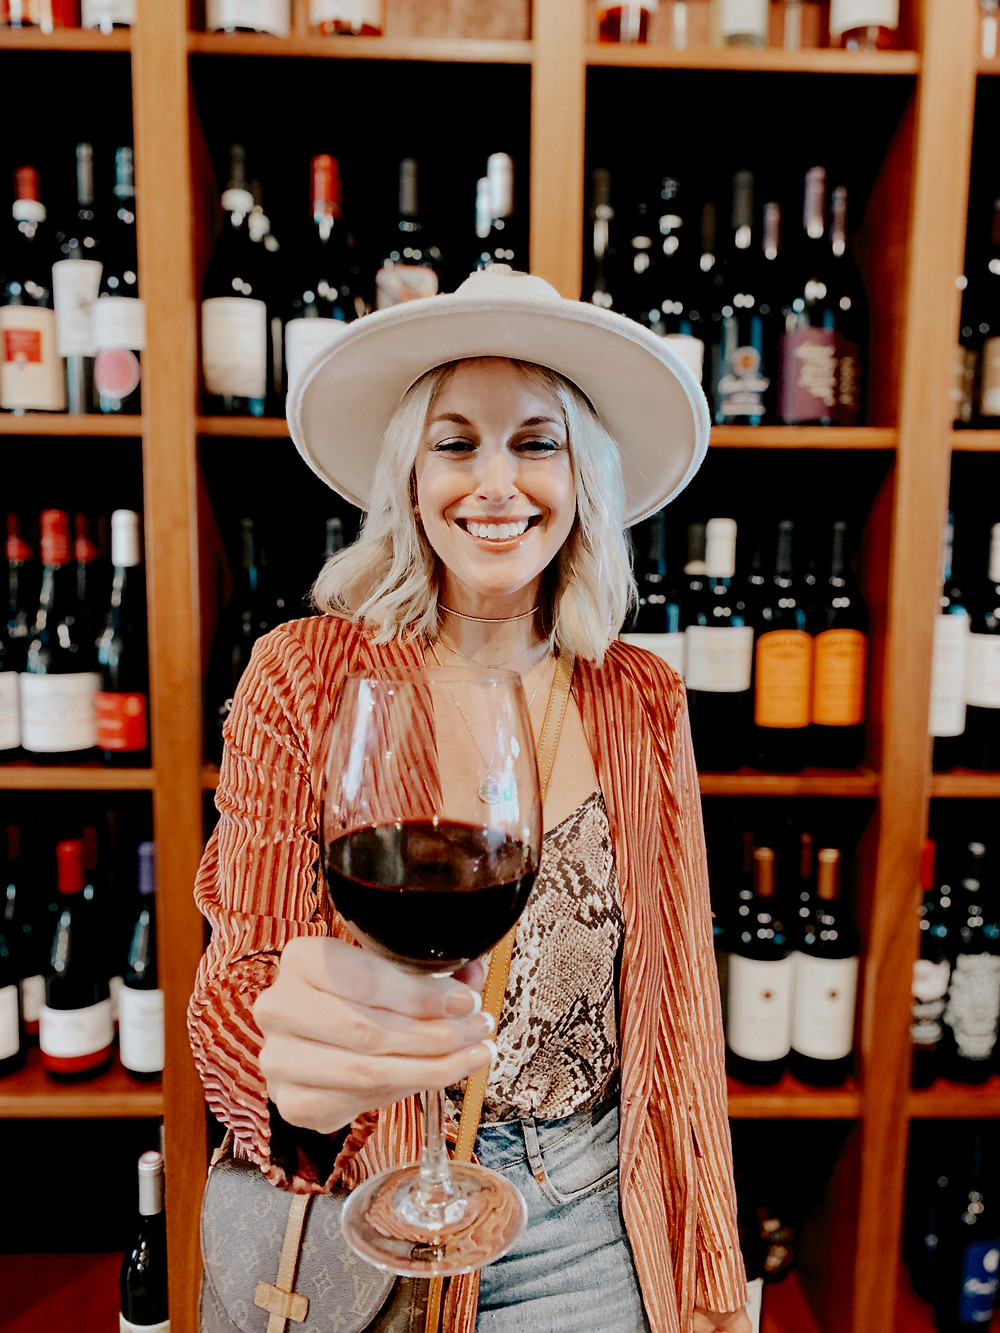 Woman cheers a glass of red wine at the camera at Santé Wine Bar and Tap Room in the Grove Arcade in Asheville North Carolina. Local travel guide and lifestyle blogger The Tony Townie.